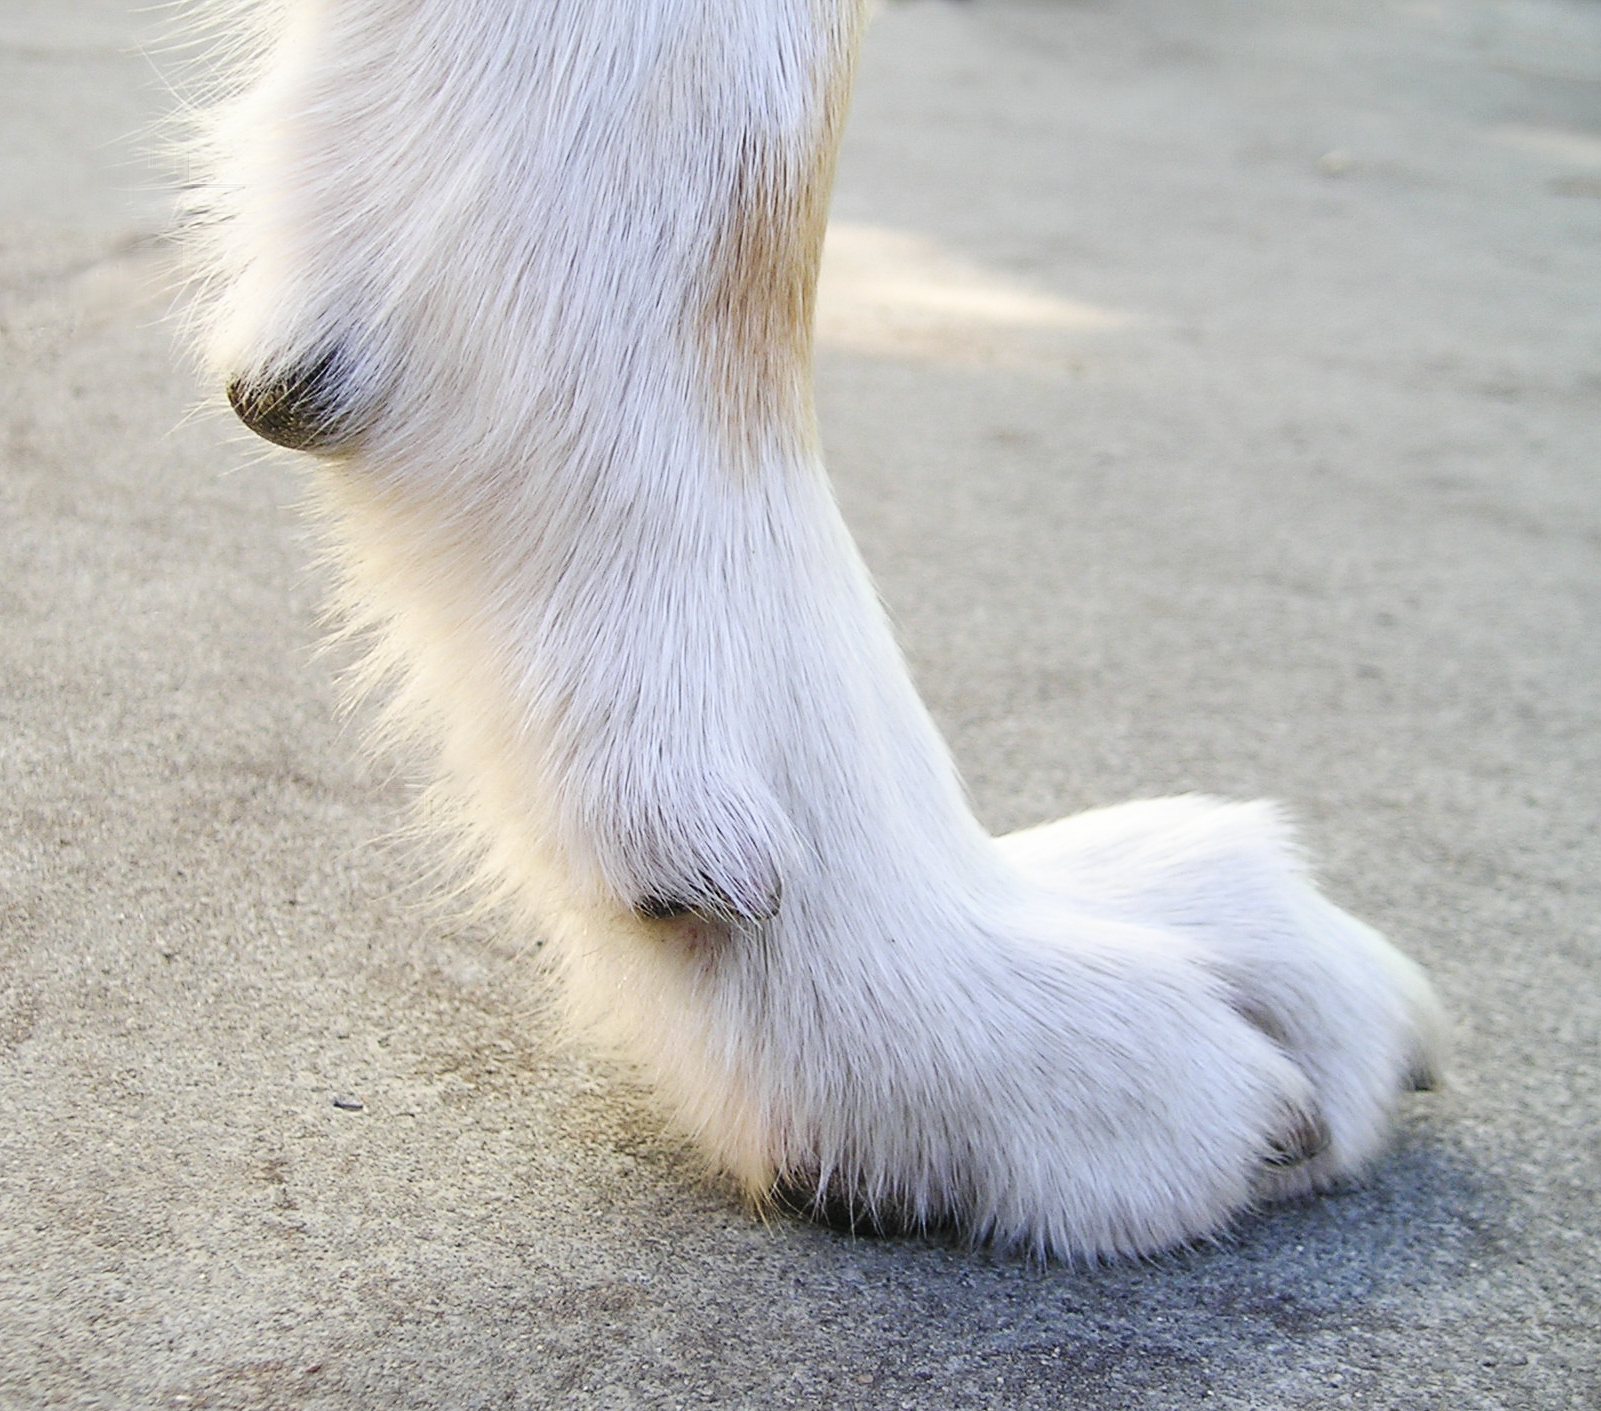 Perfect Dog Dew Claw Removing Dew A Overview Dog Dew Claw Removal Dog Dew Claw Nail Fell Off bark post Dog Dew Claw